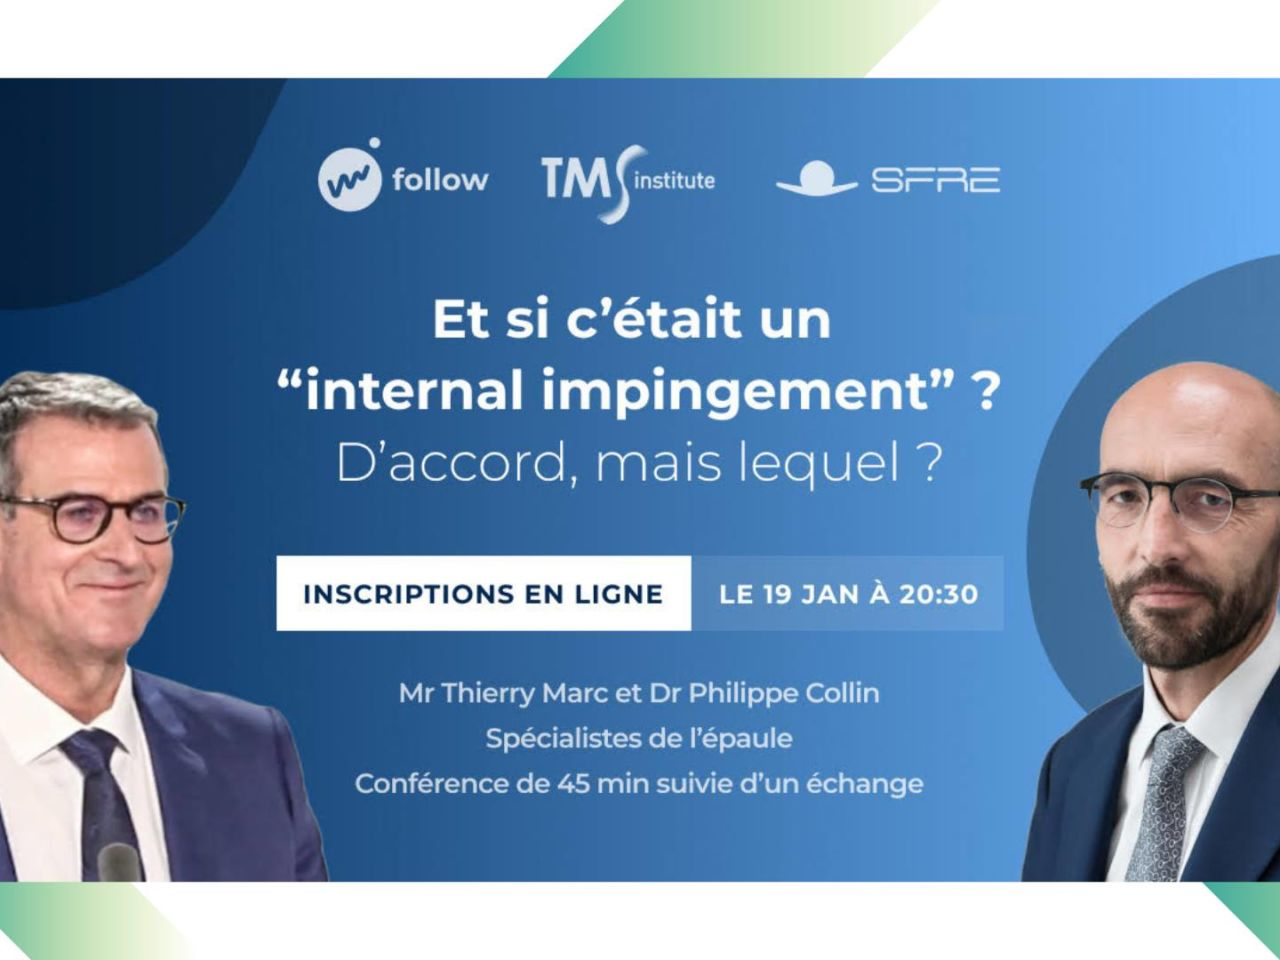 webinar-thierry-marc-philippe-collin Internal Impingement